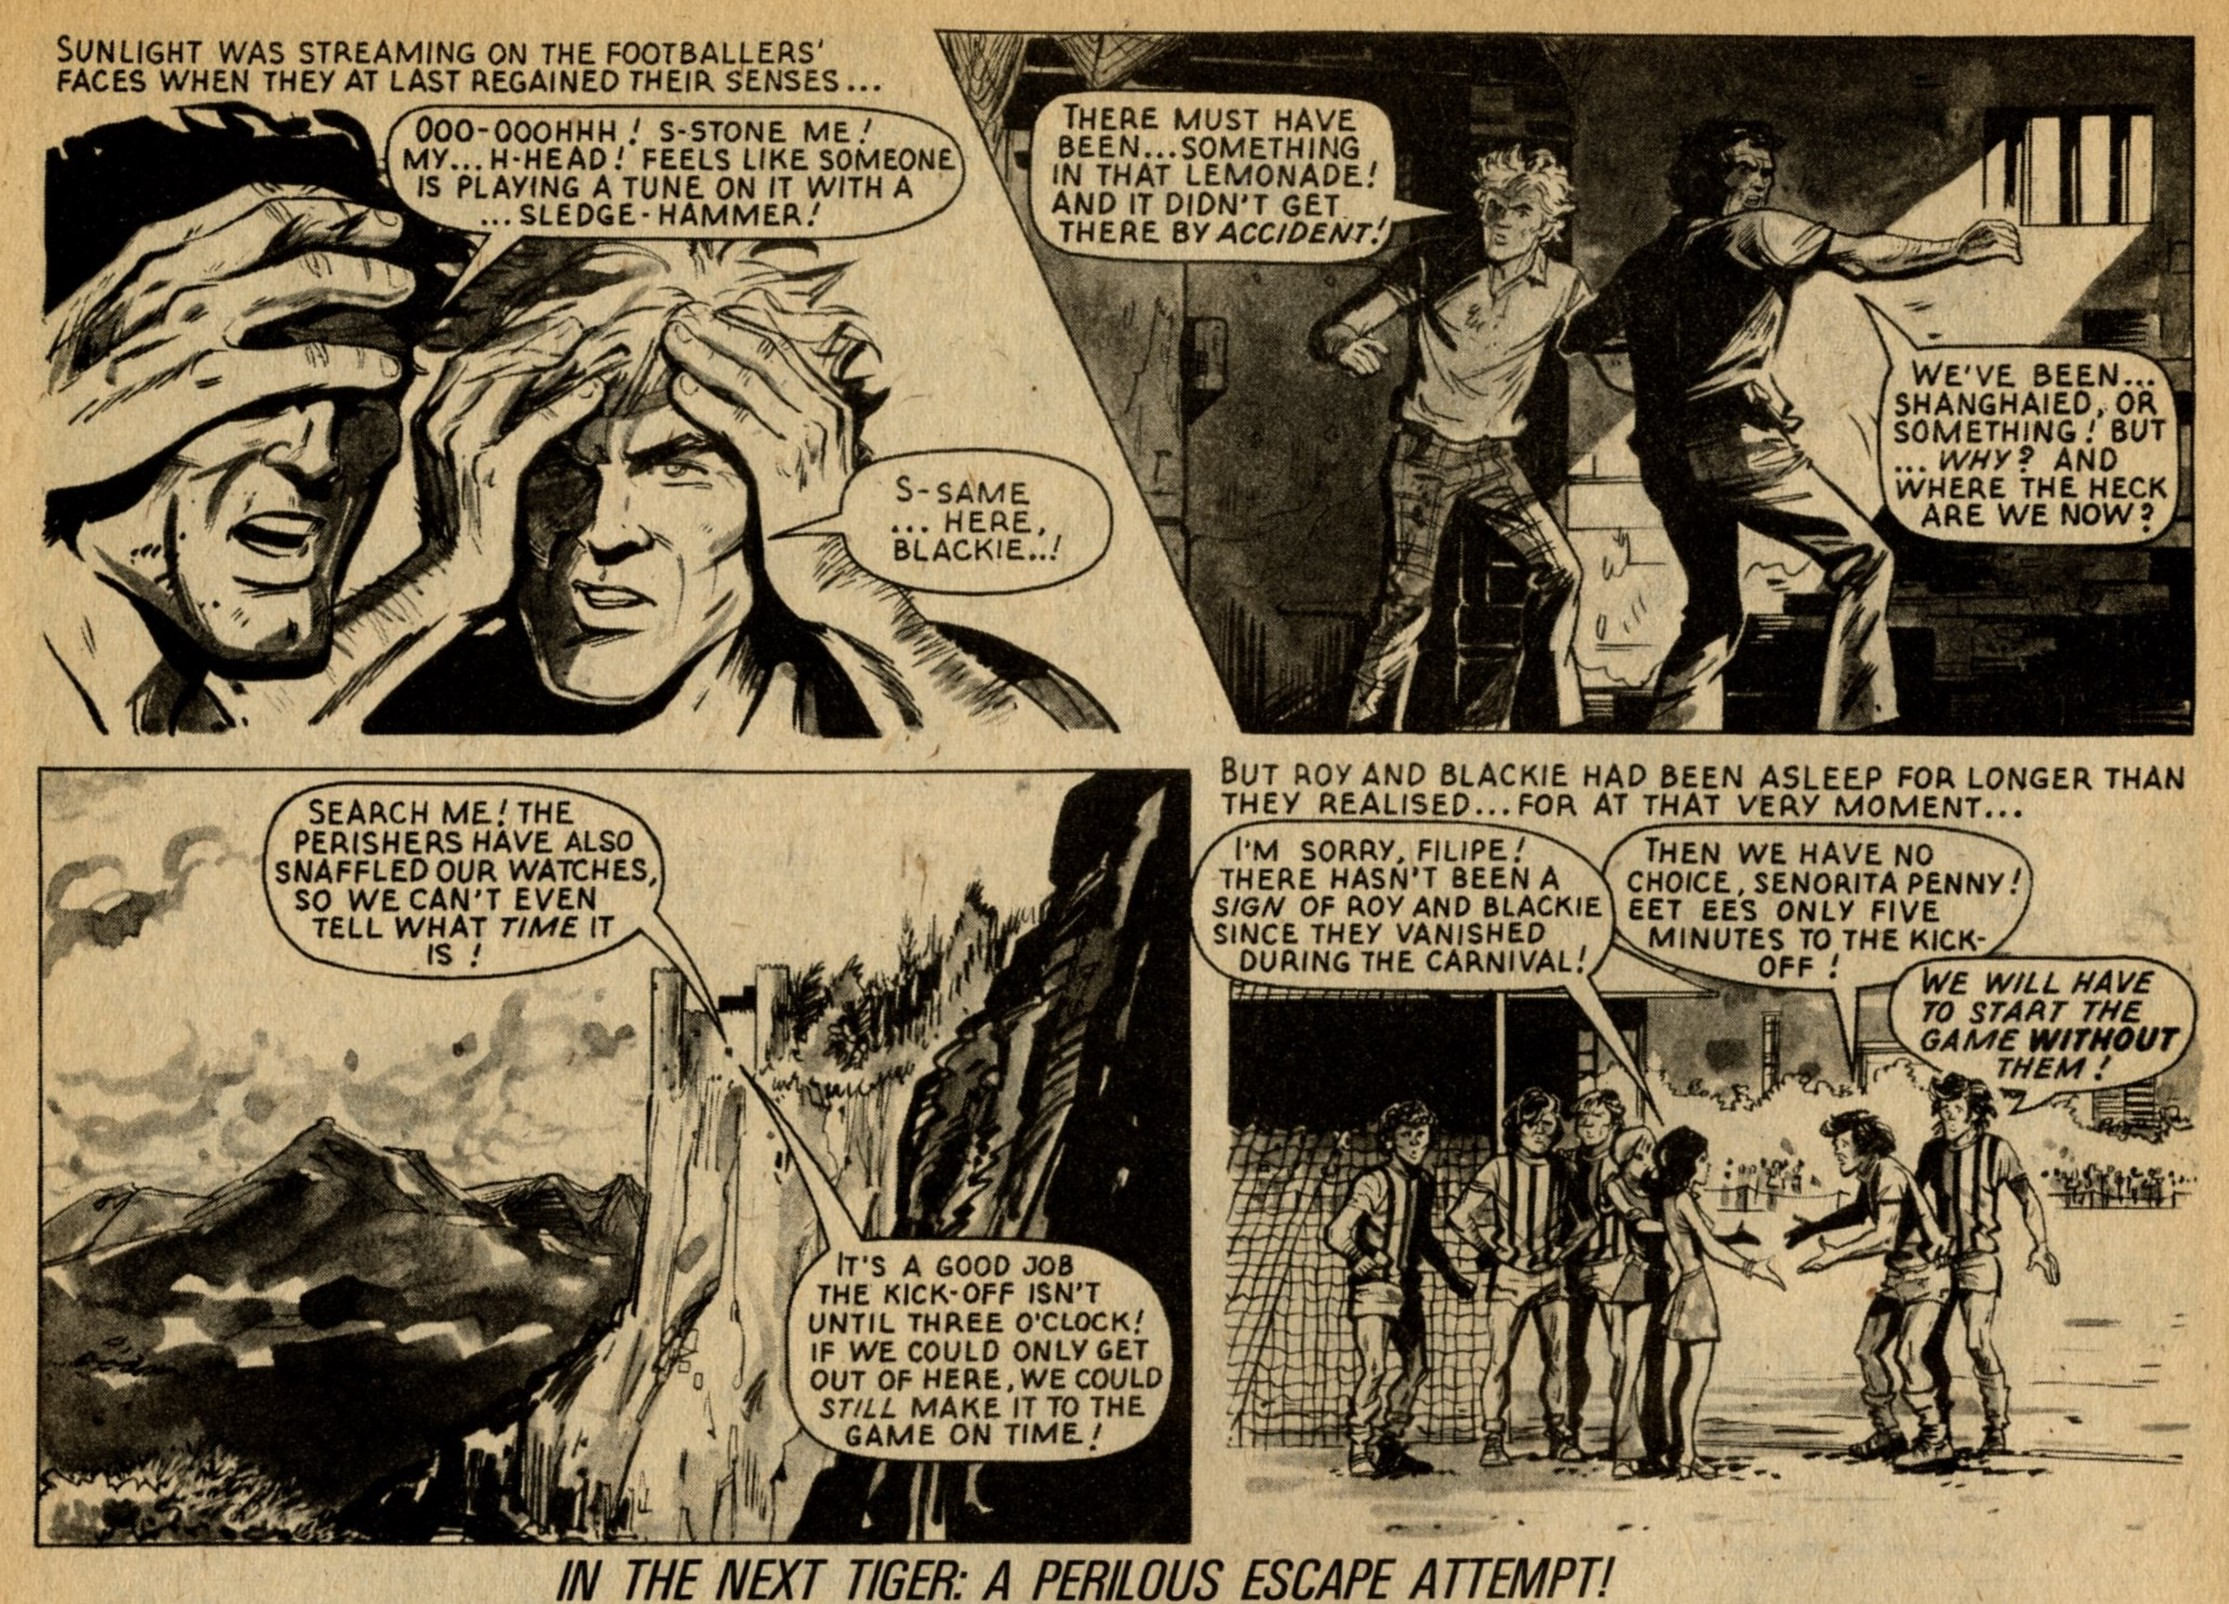 Roy of the Rovers: Tom Tully (writer), Yvonne Hutton (artist)